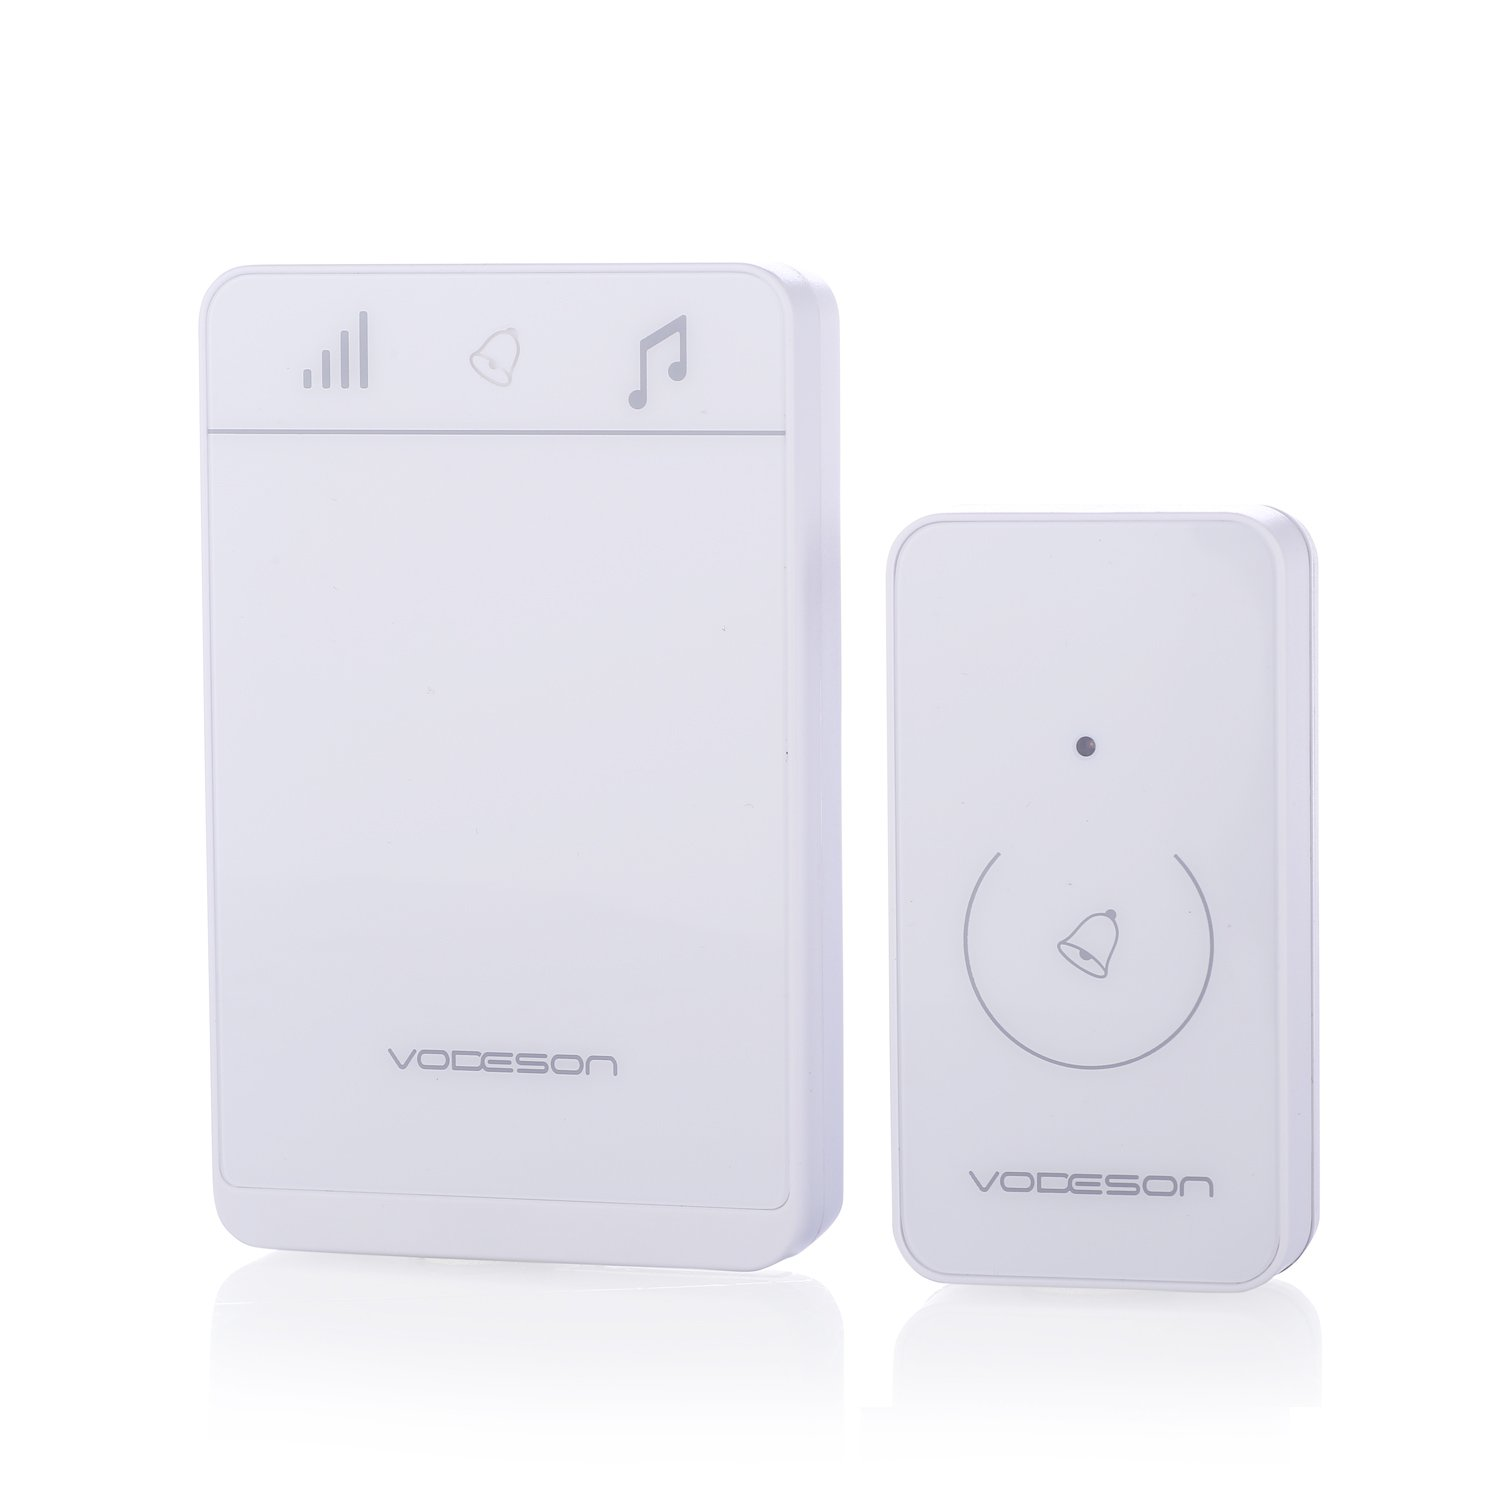 VODESON Wireless Doorbell Battery Chime Electronic Remote Control Waterproof Touch Button Portable Door Bell System 1 Touch Sensor Push Button and 1 Door Chime Use for Home Apartments Office White